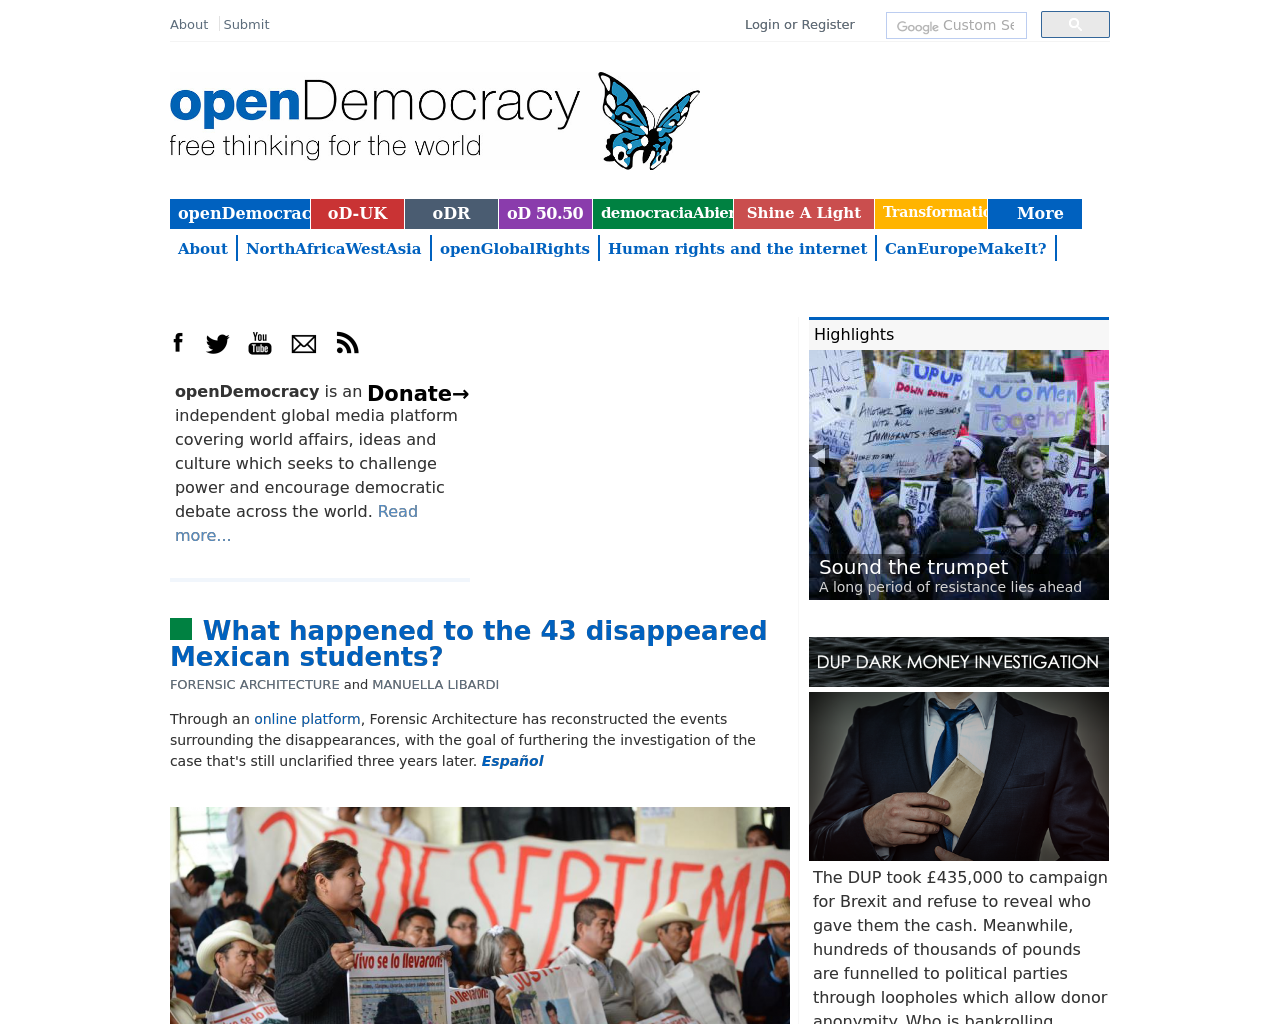 openDemocracy-Advertising-Reviews-Pricing